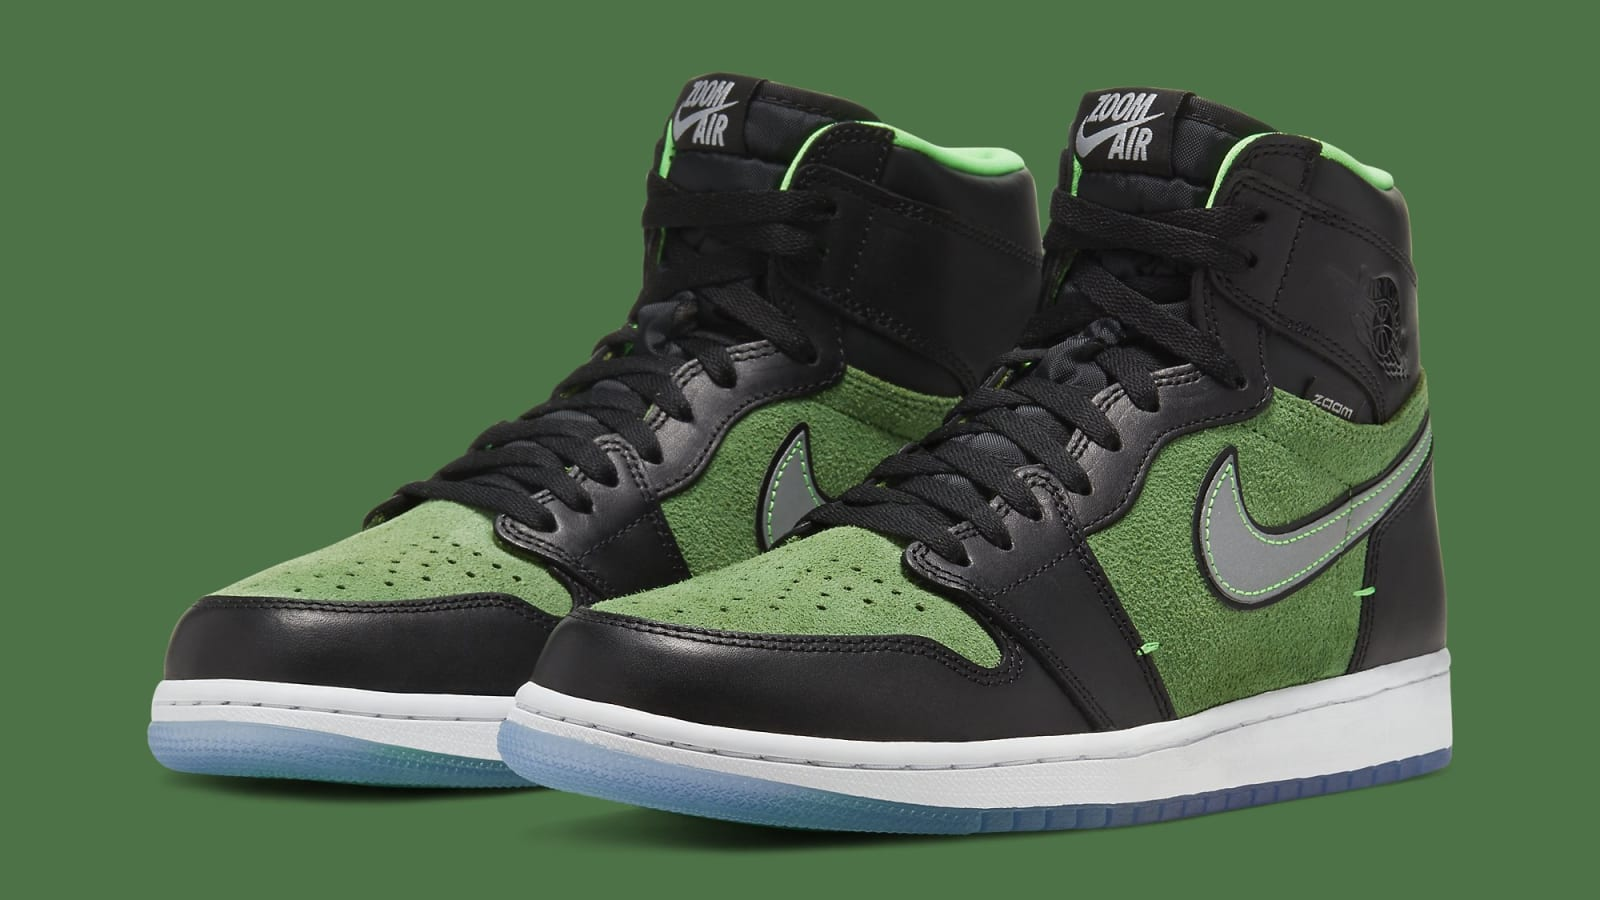 Air Jordan 1 High Zoom Rage Green Walrus Oxford